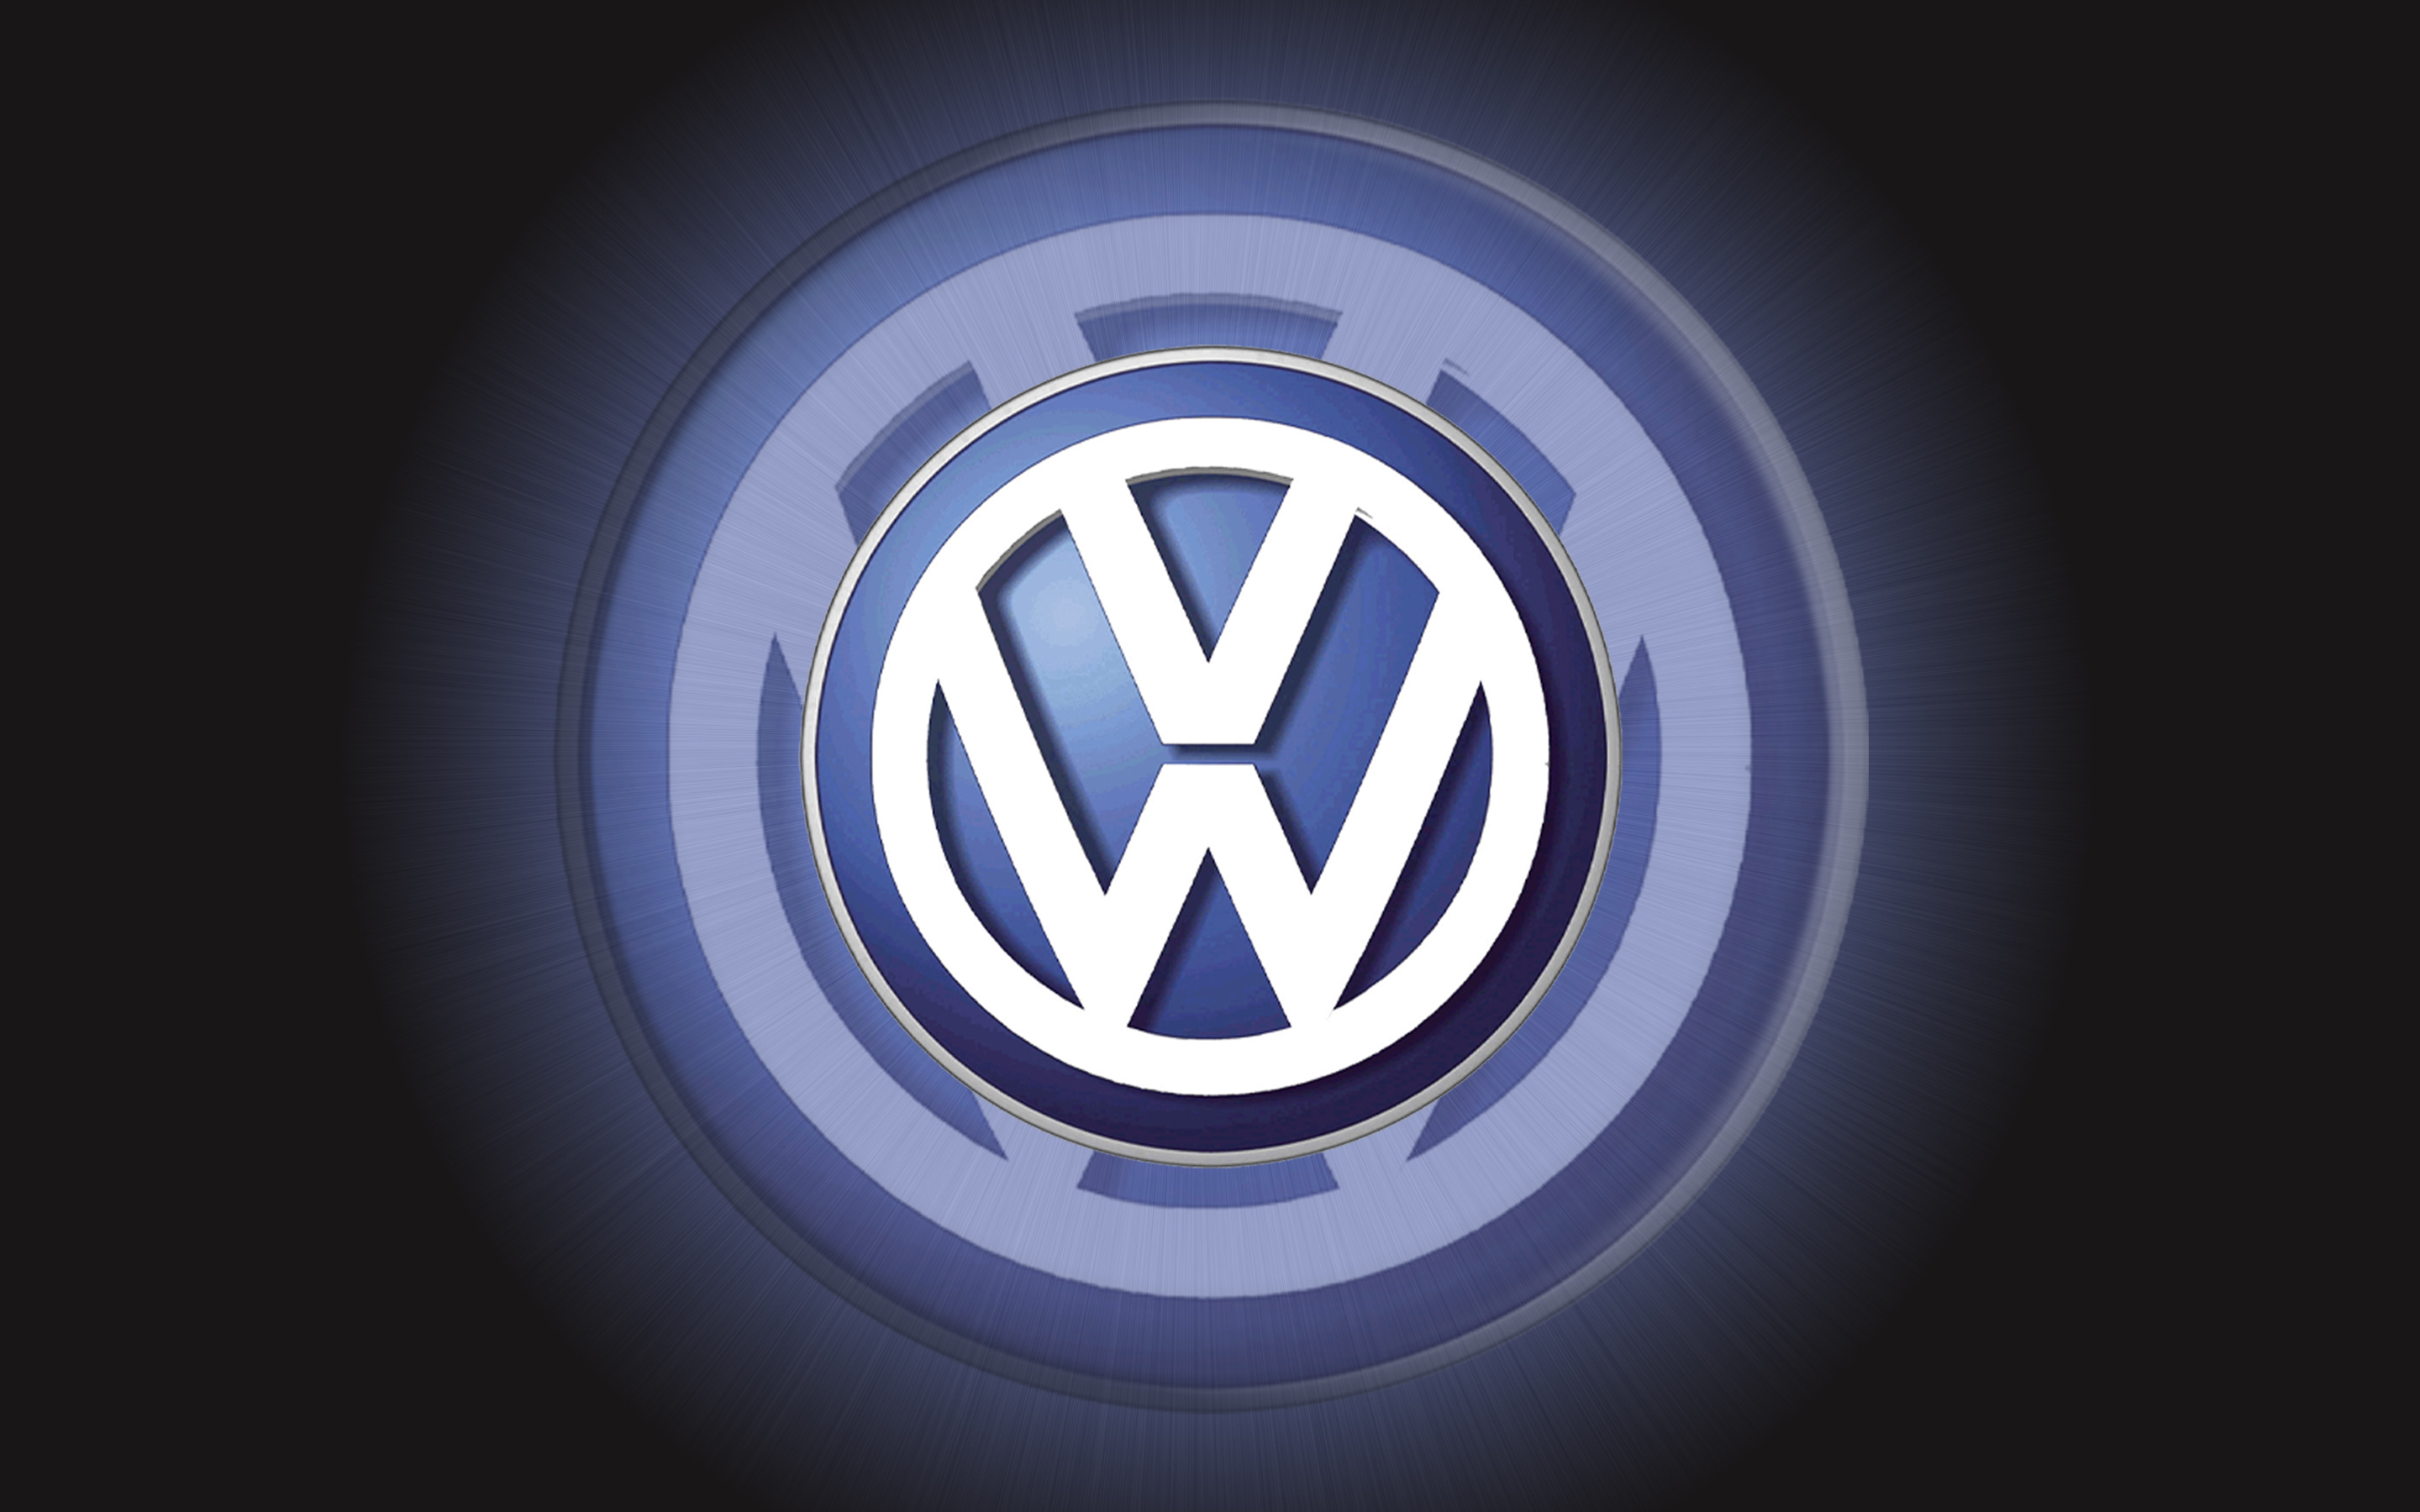 3d vw logo iphone wallpaper: desktop hd wallpaper - download free